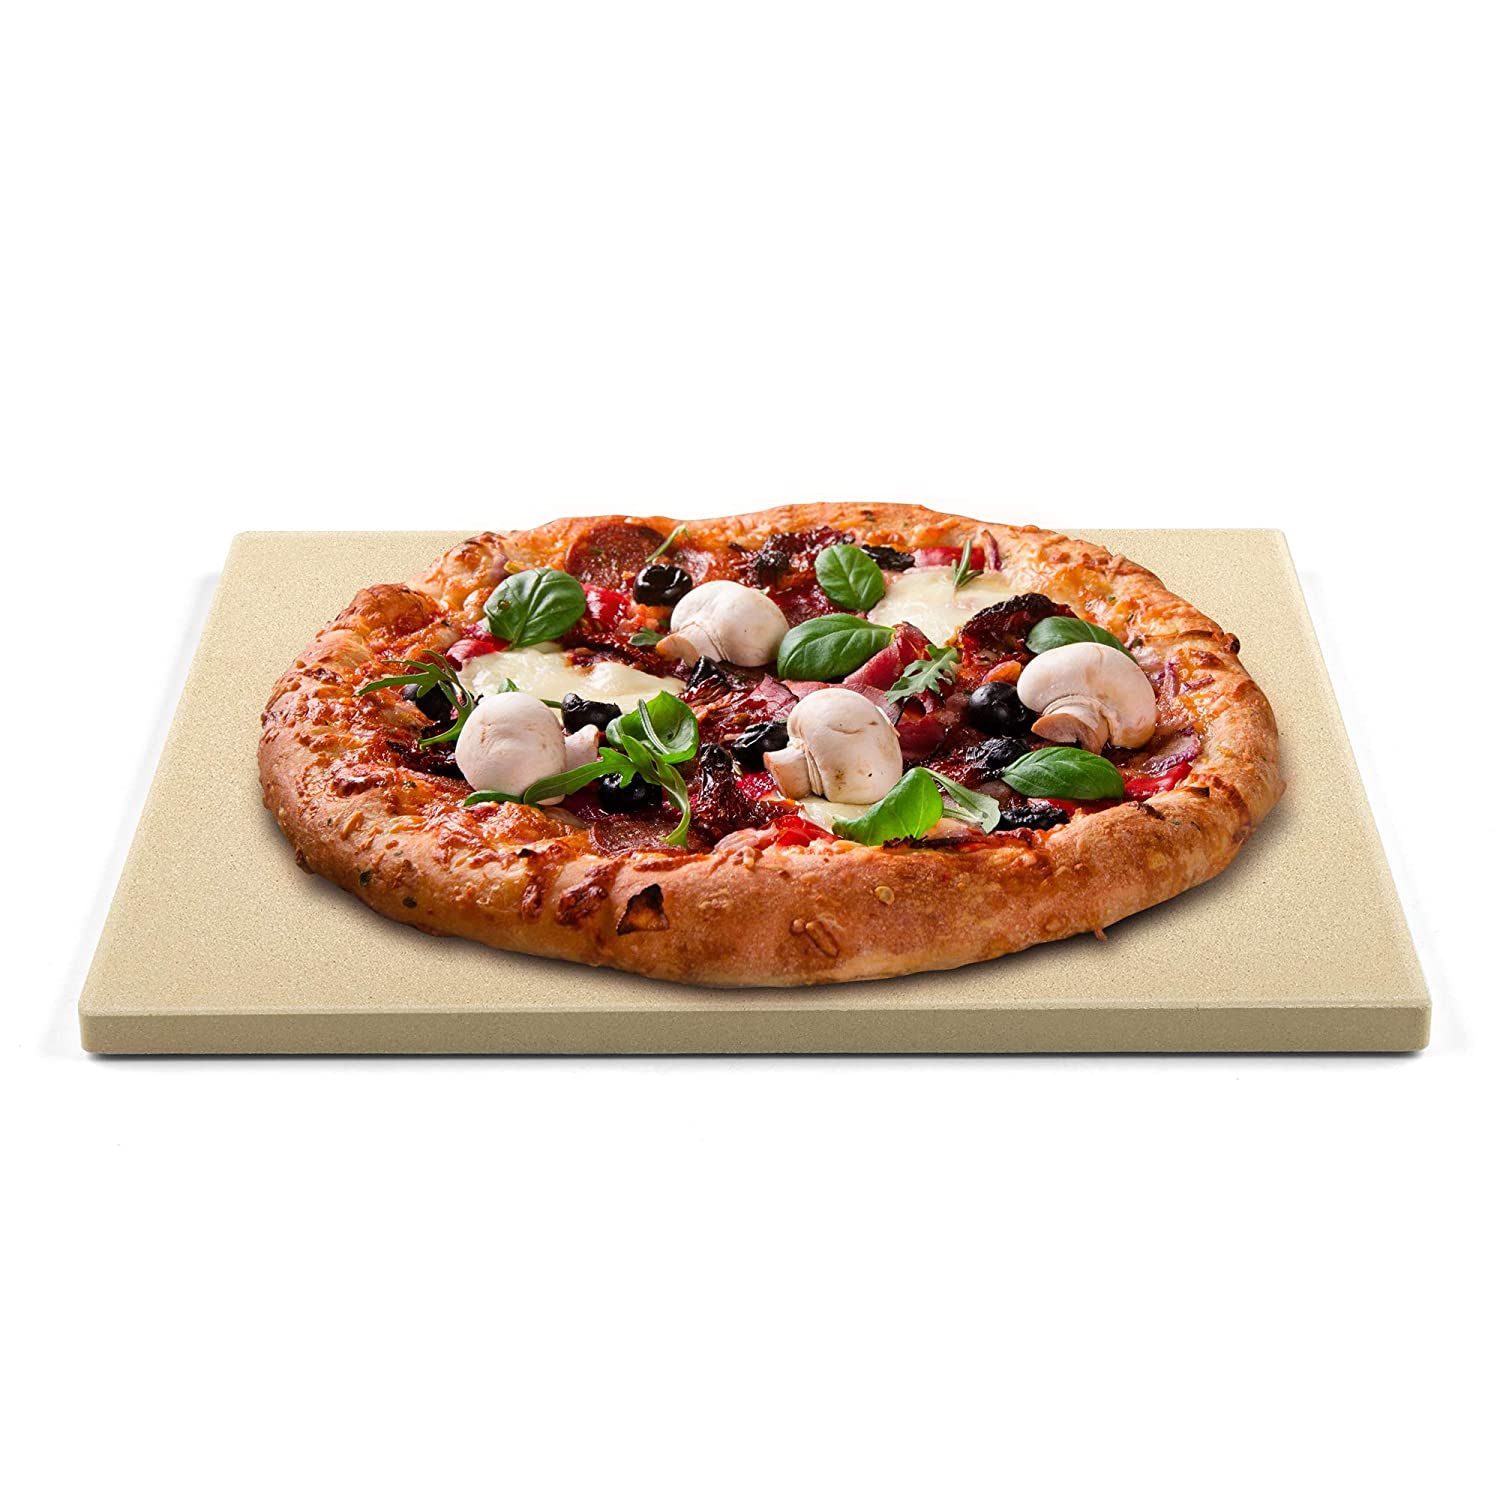 Cook N Home 02663 Pizza Grilling Baking Stone, 16-inch x 14-inch rectangular x 5/8-inch thick, Cream